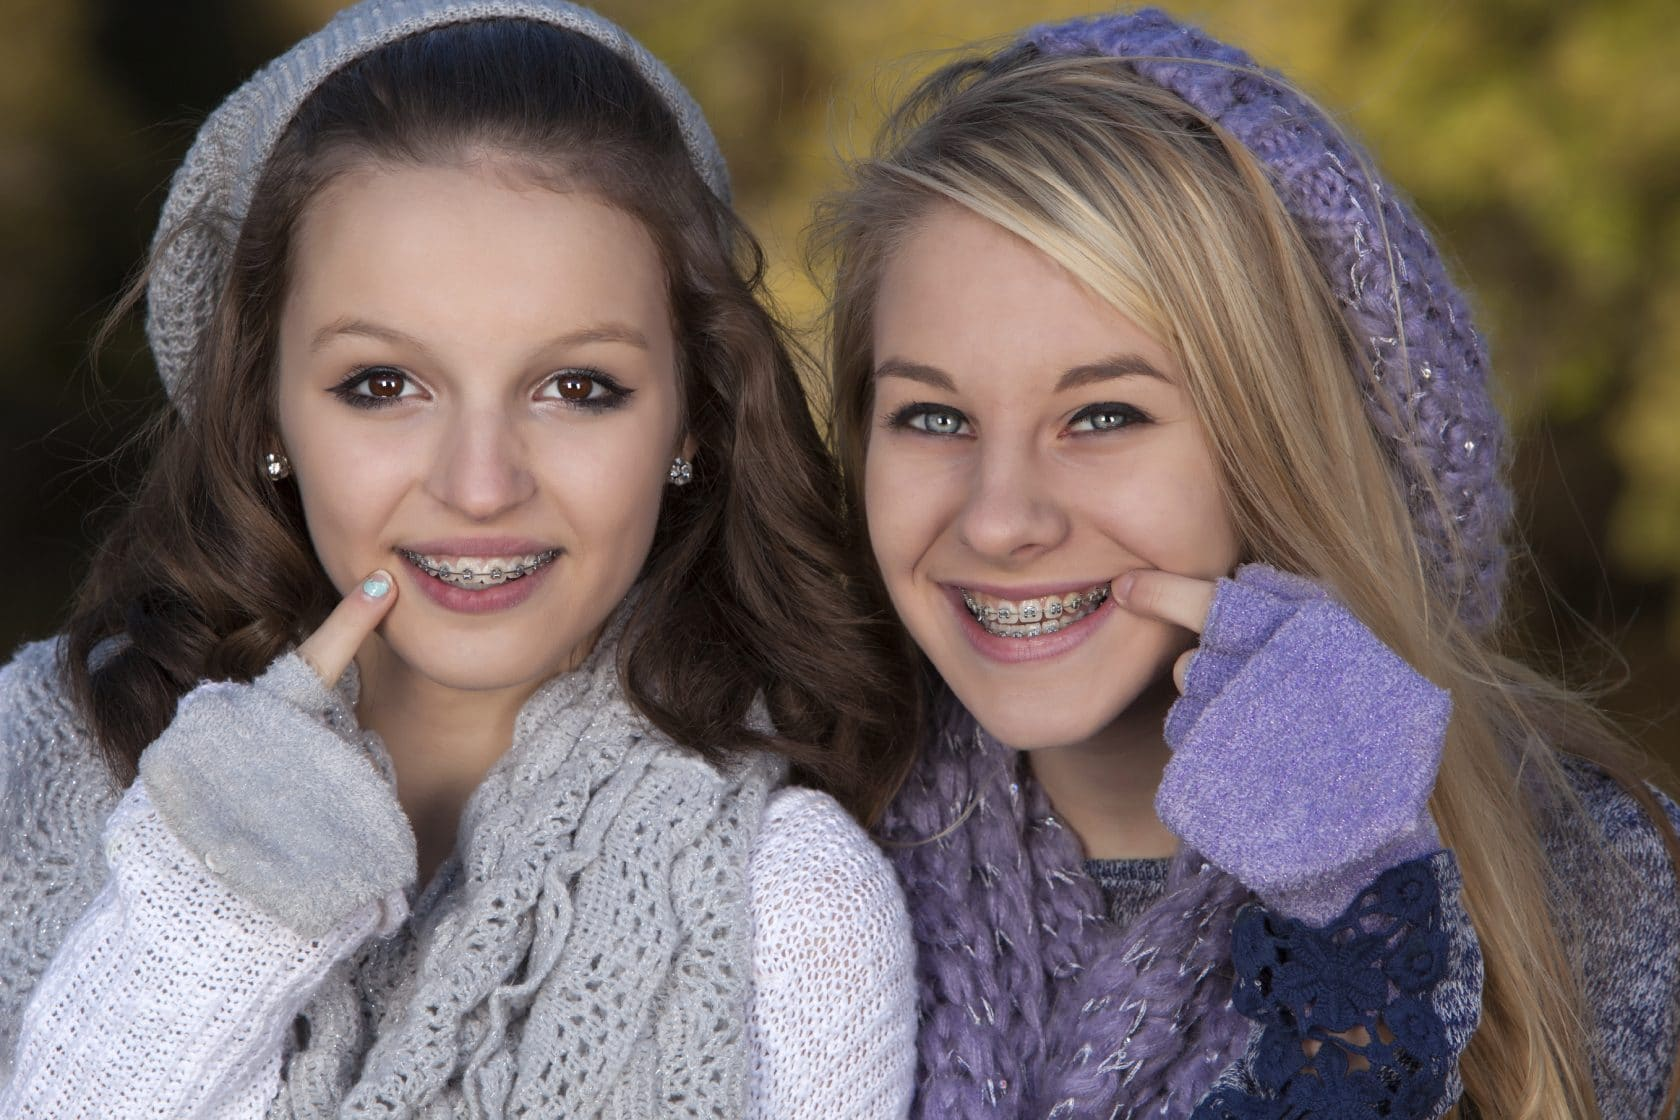 Two teenage girls smiling as they point to their braces